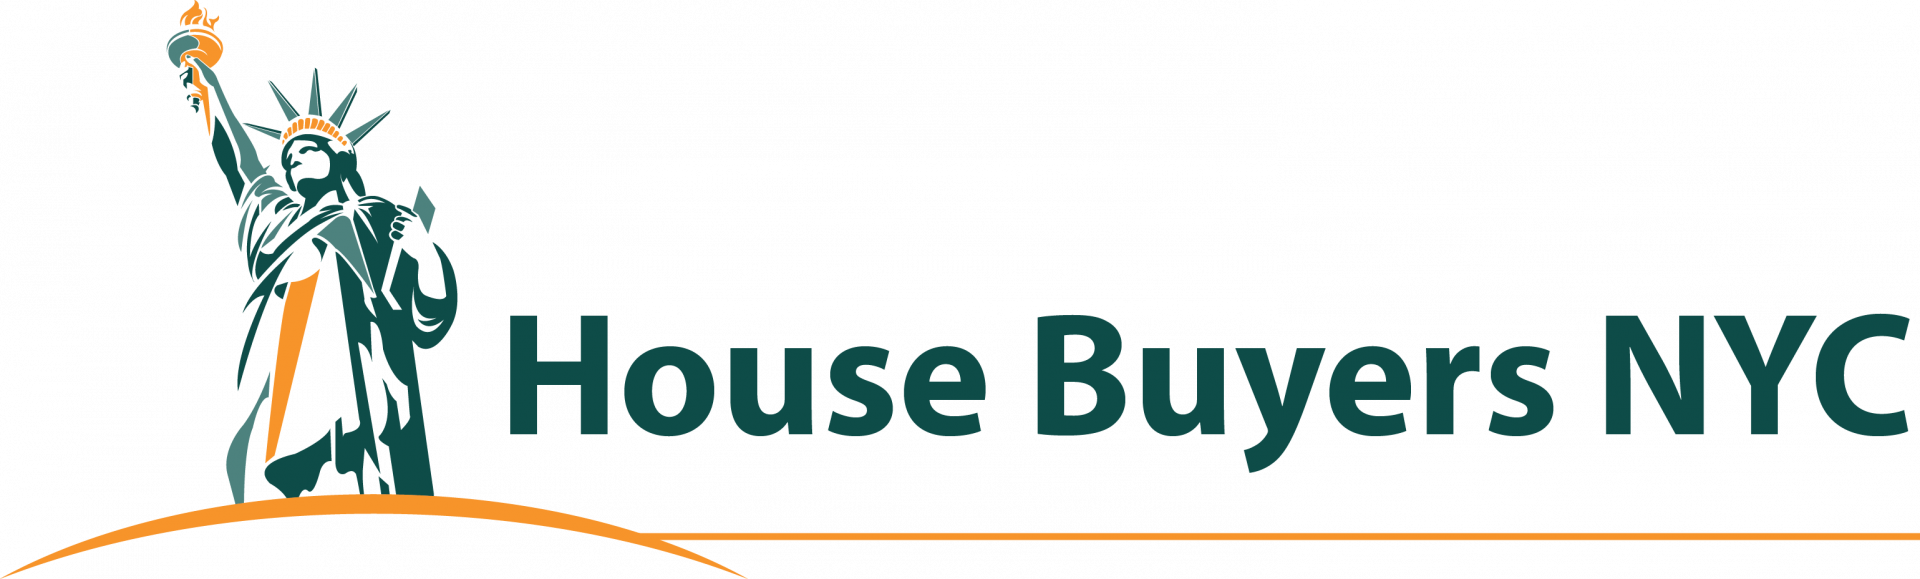 House Buyers NYC logo